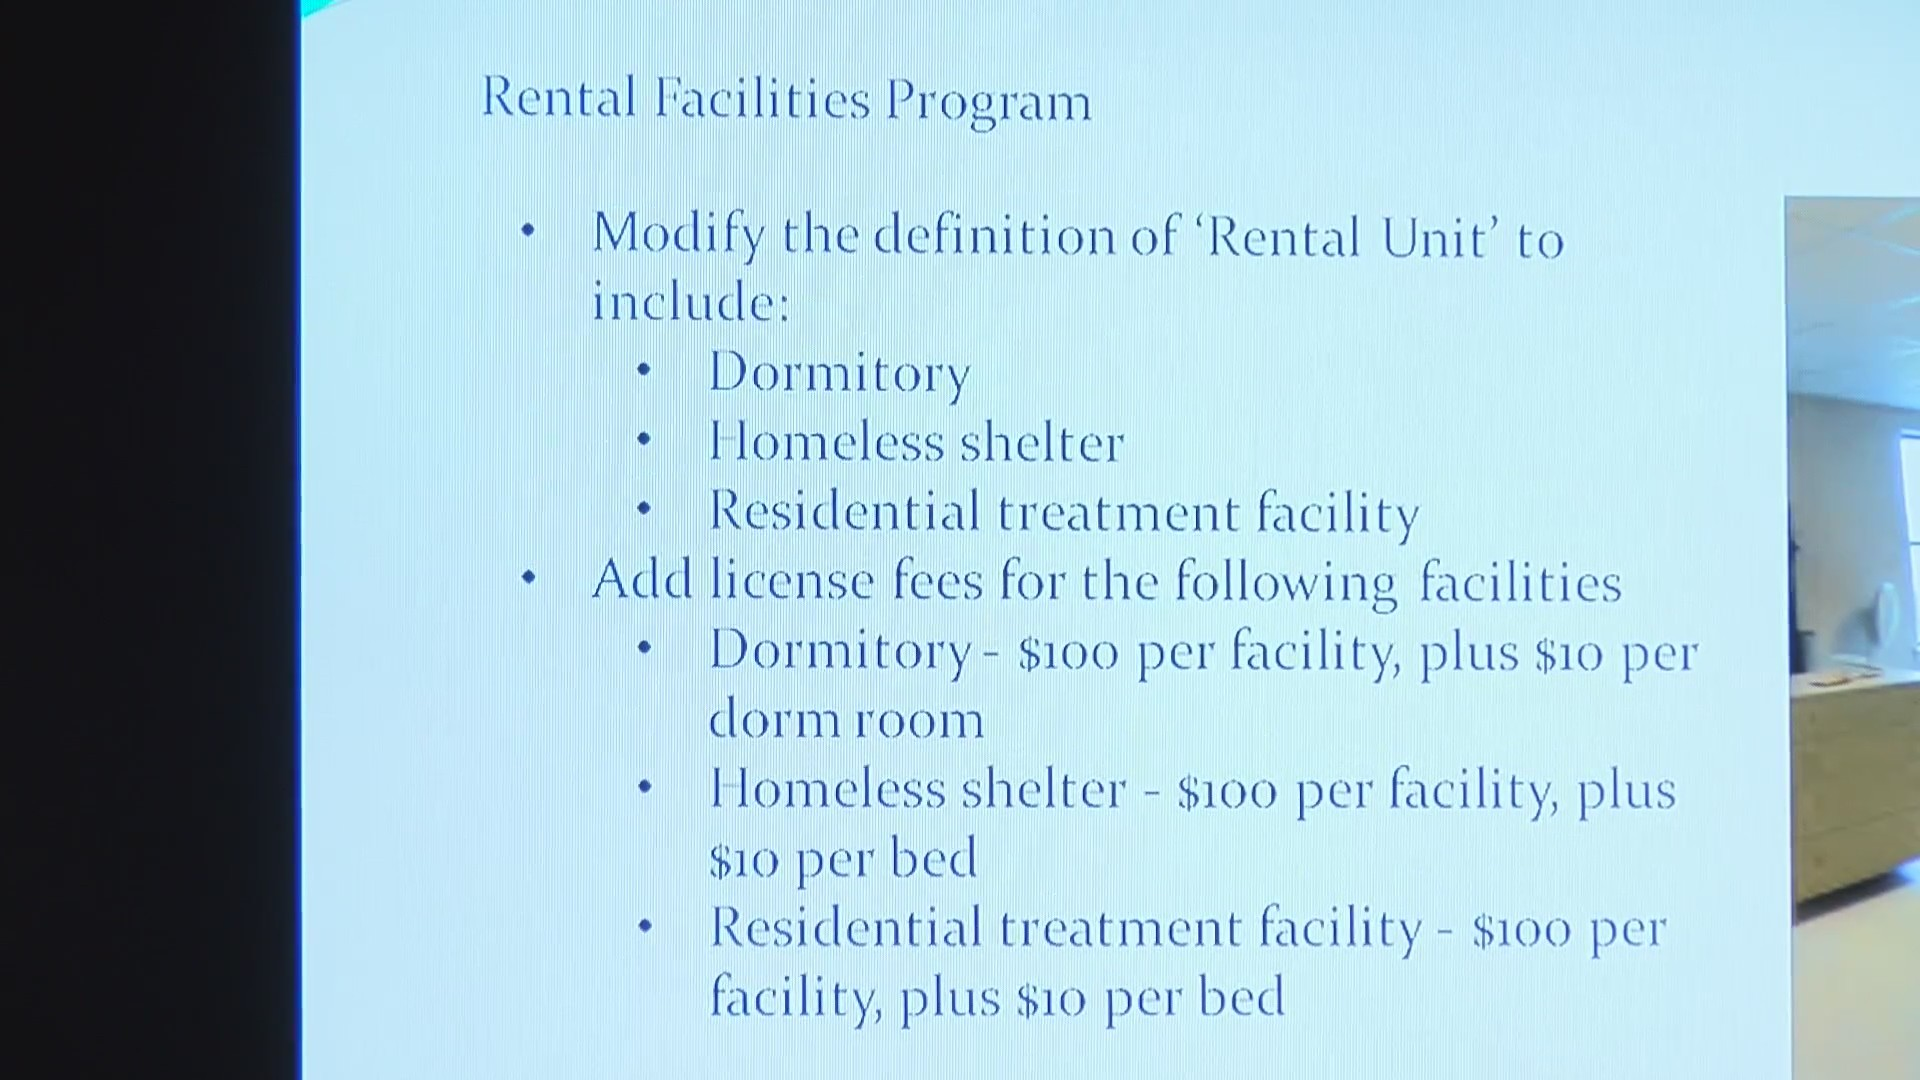 Rental_facilities_program_0_20180404021215